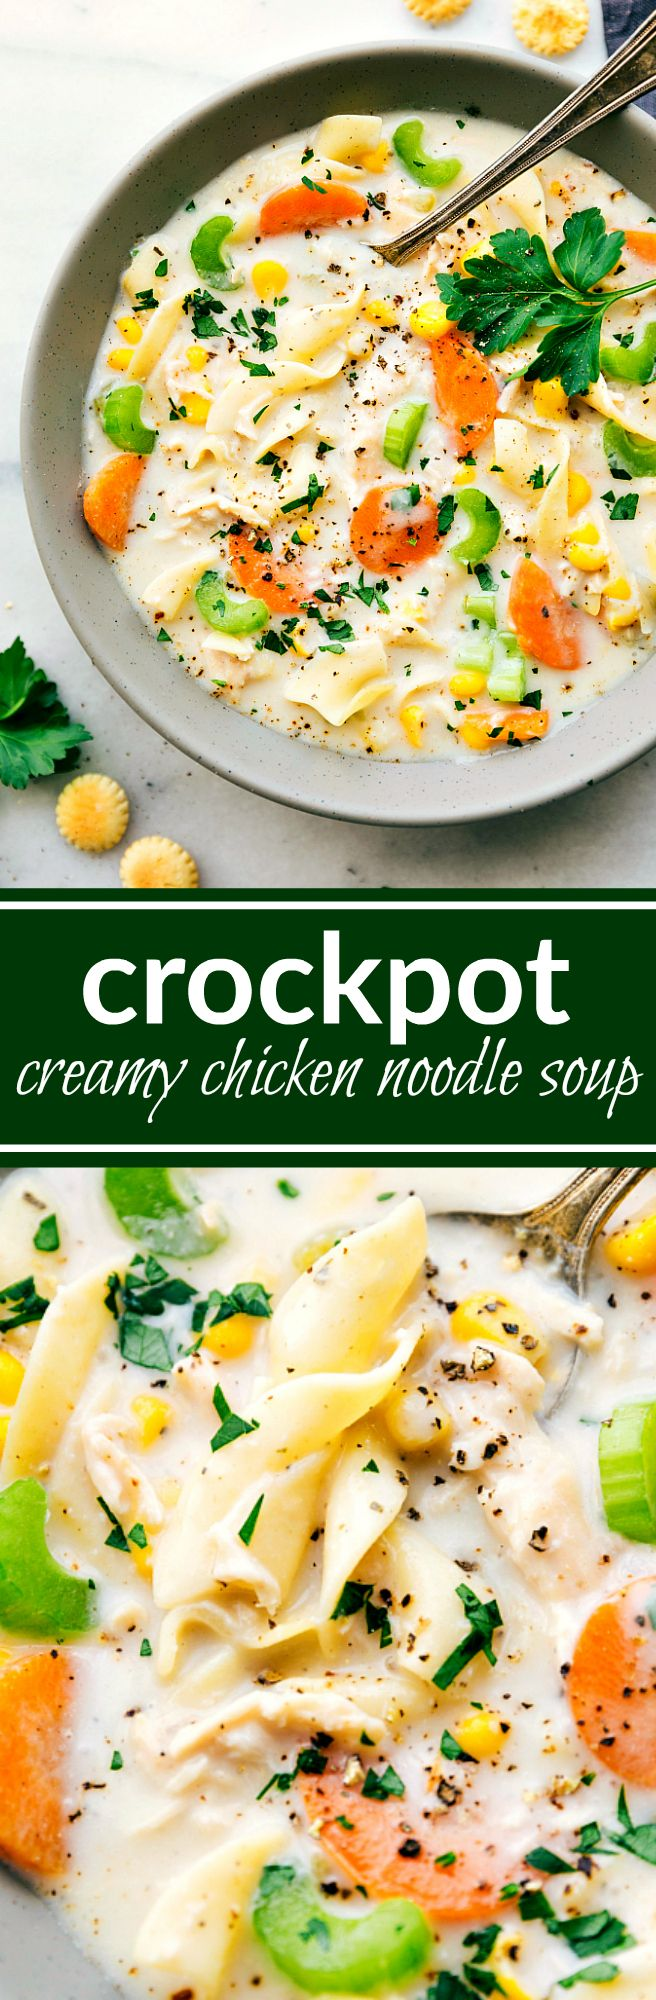 CROCKPOT Creamy Chicken Noodle Soup! Packed with flavor and so easy to make! Recipe via chelseasmessyapron.com